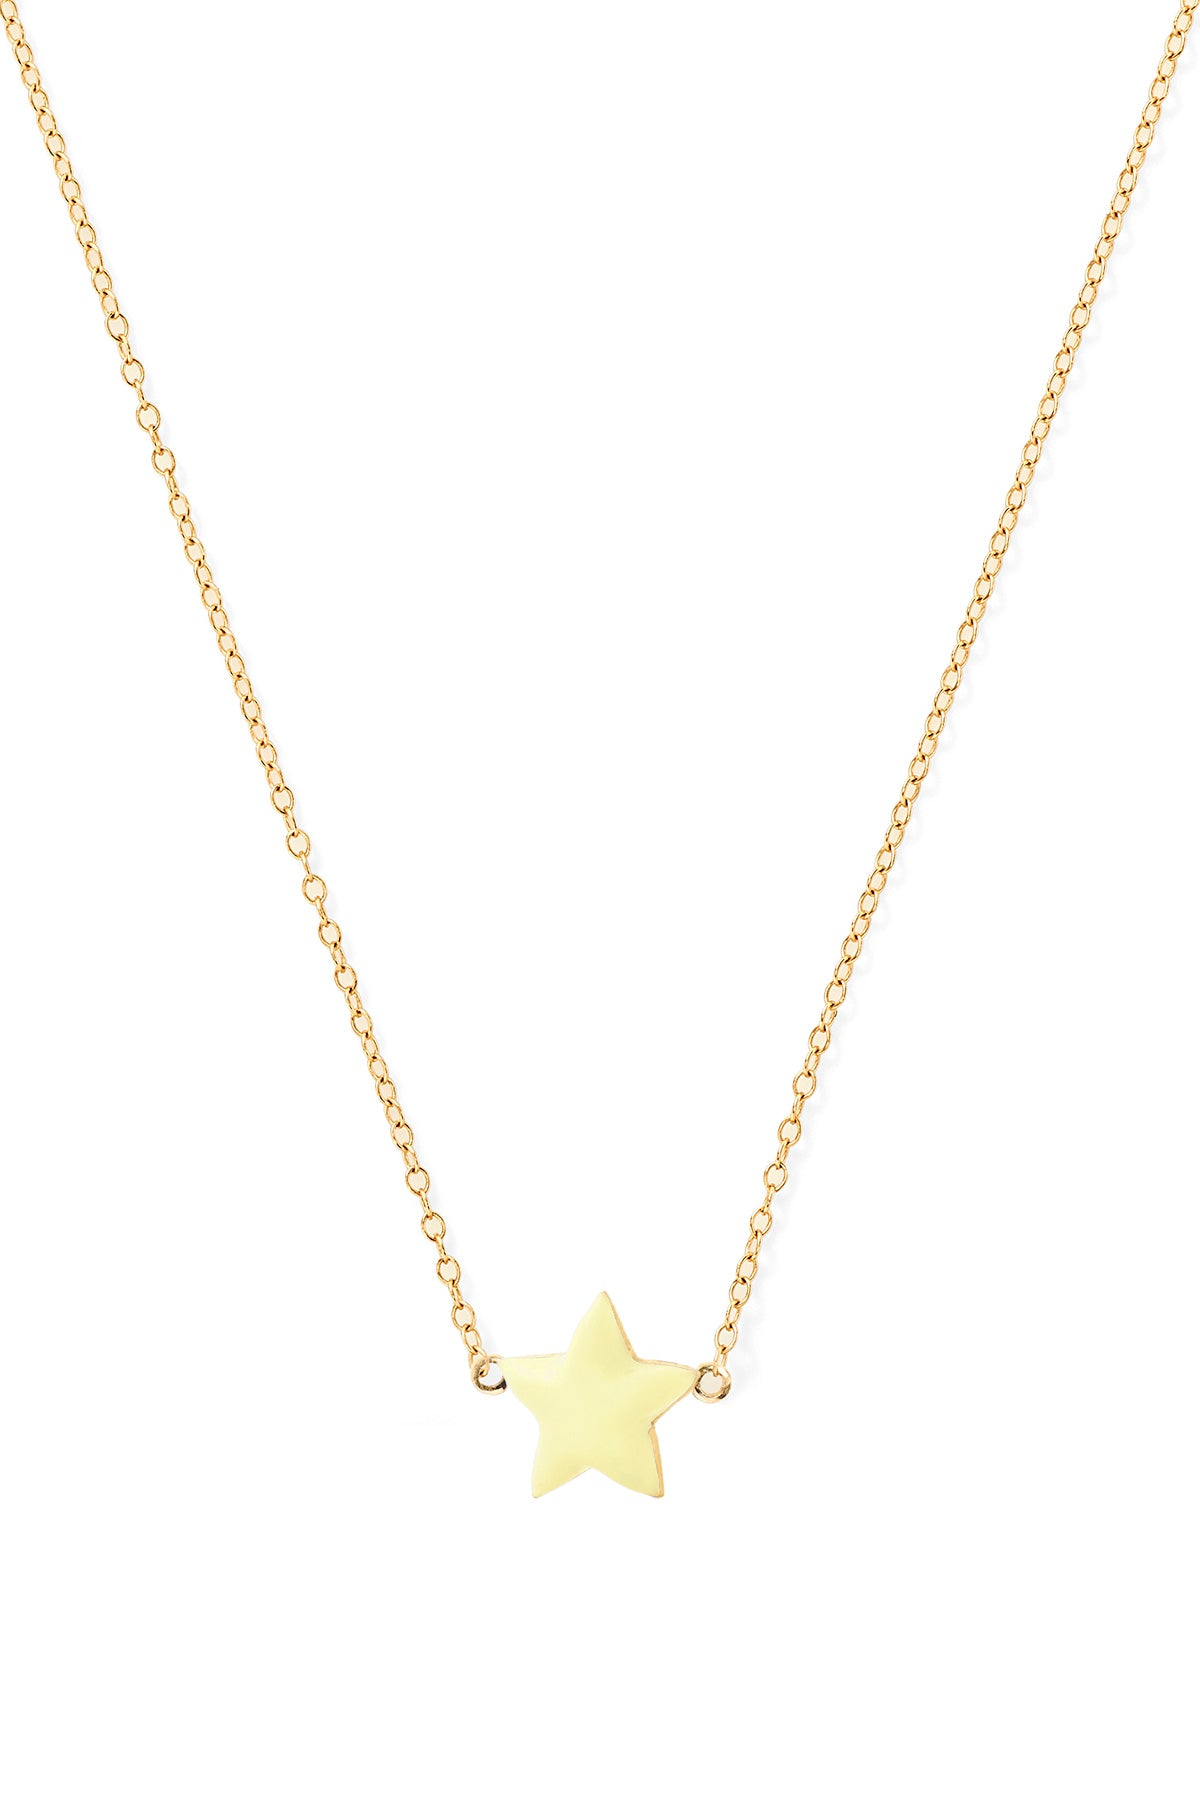 Star Necklace - In Stock